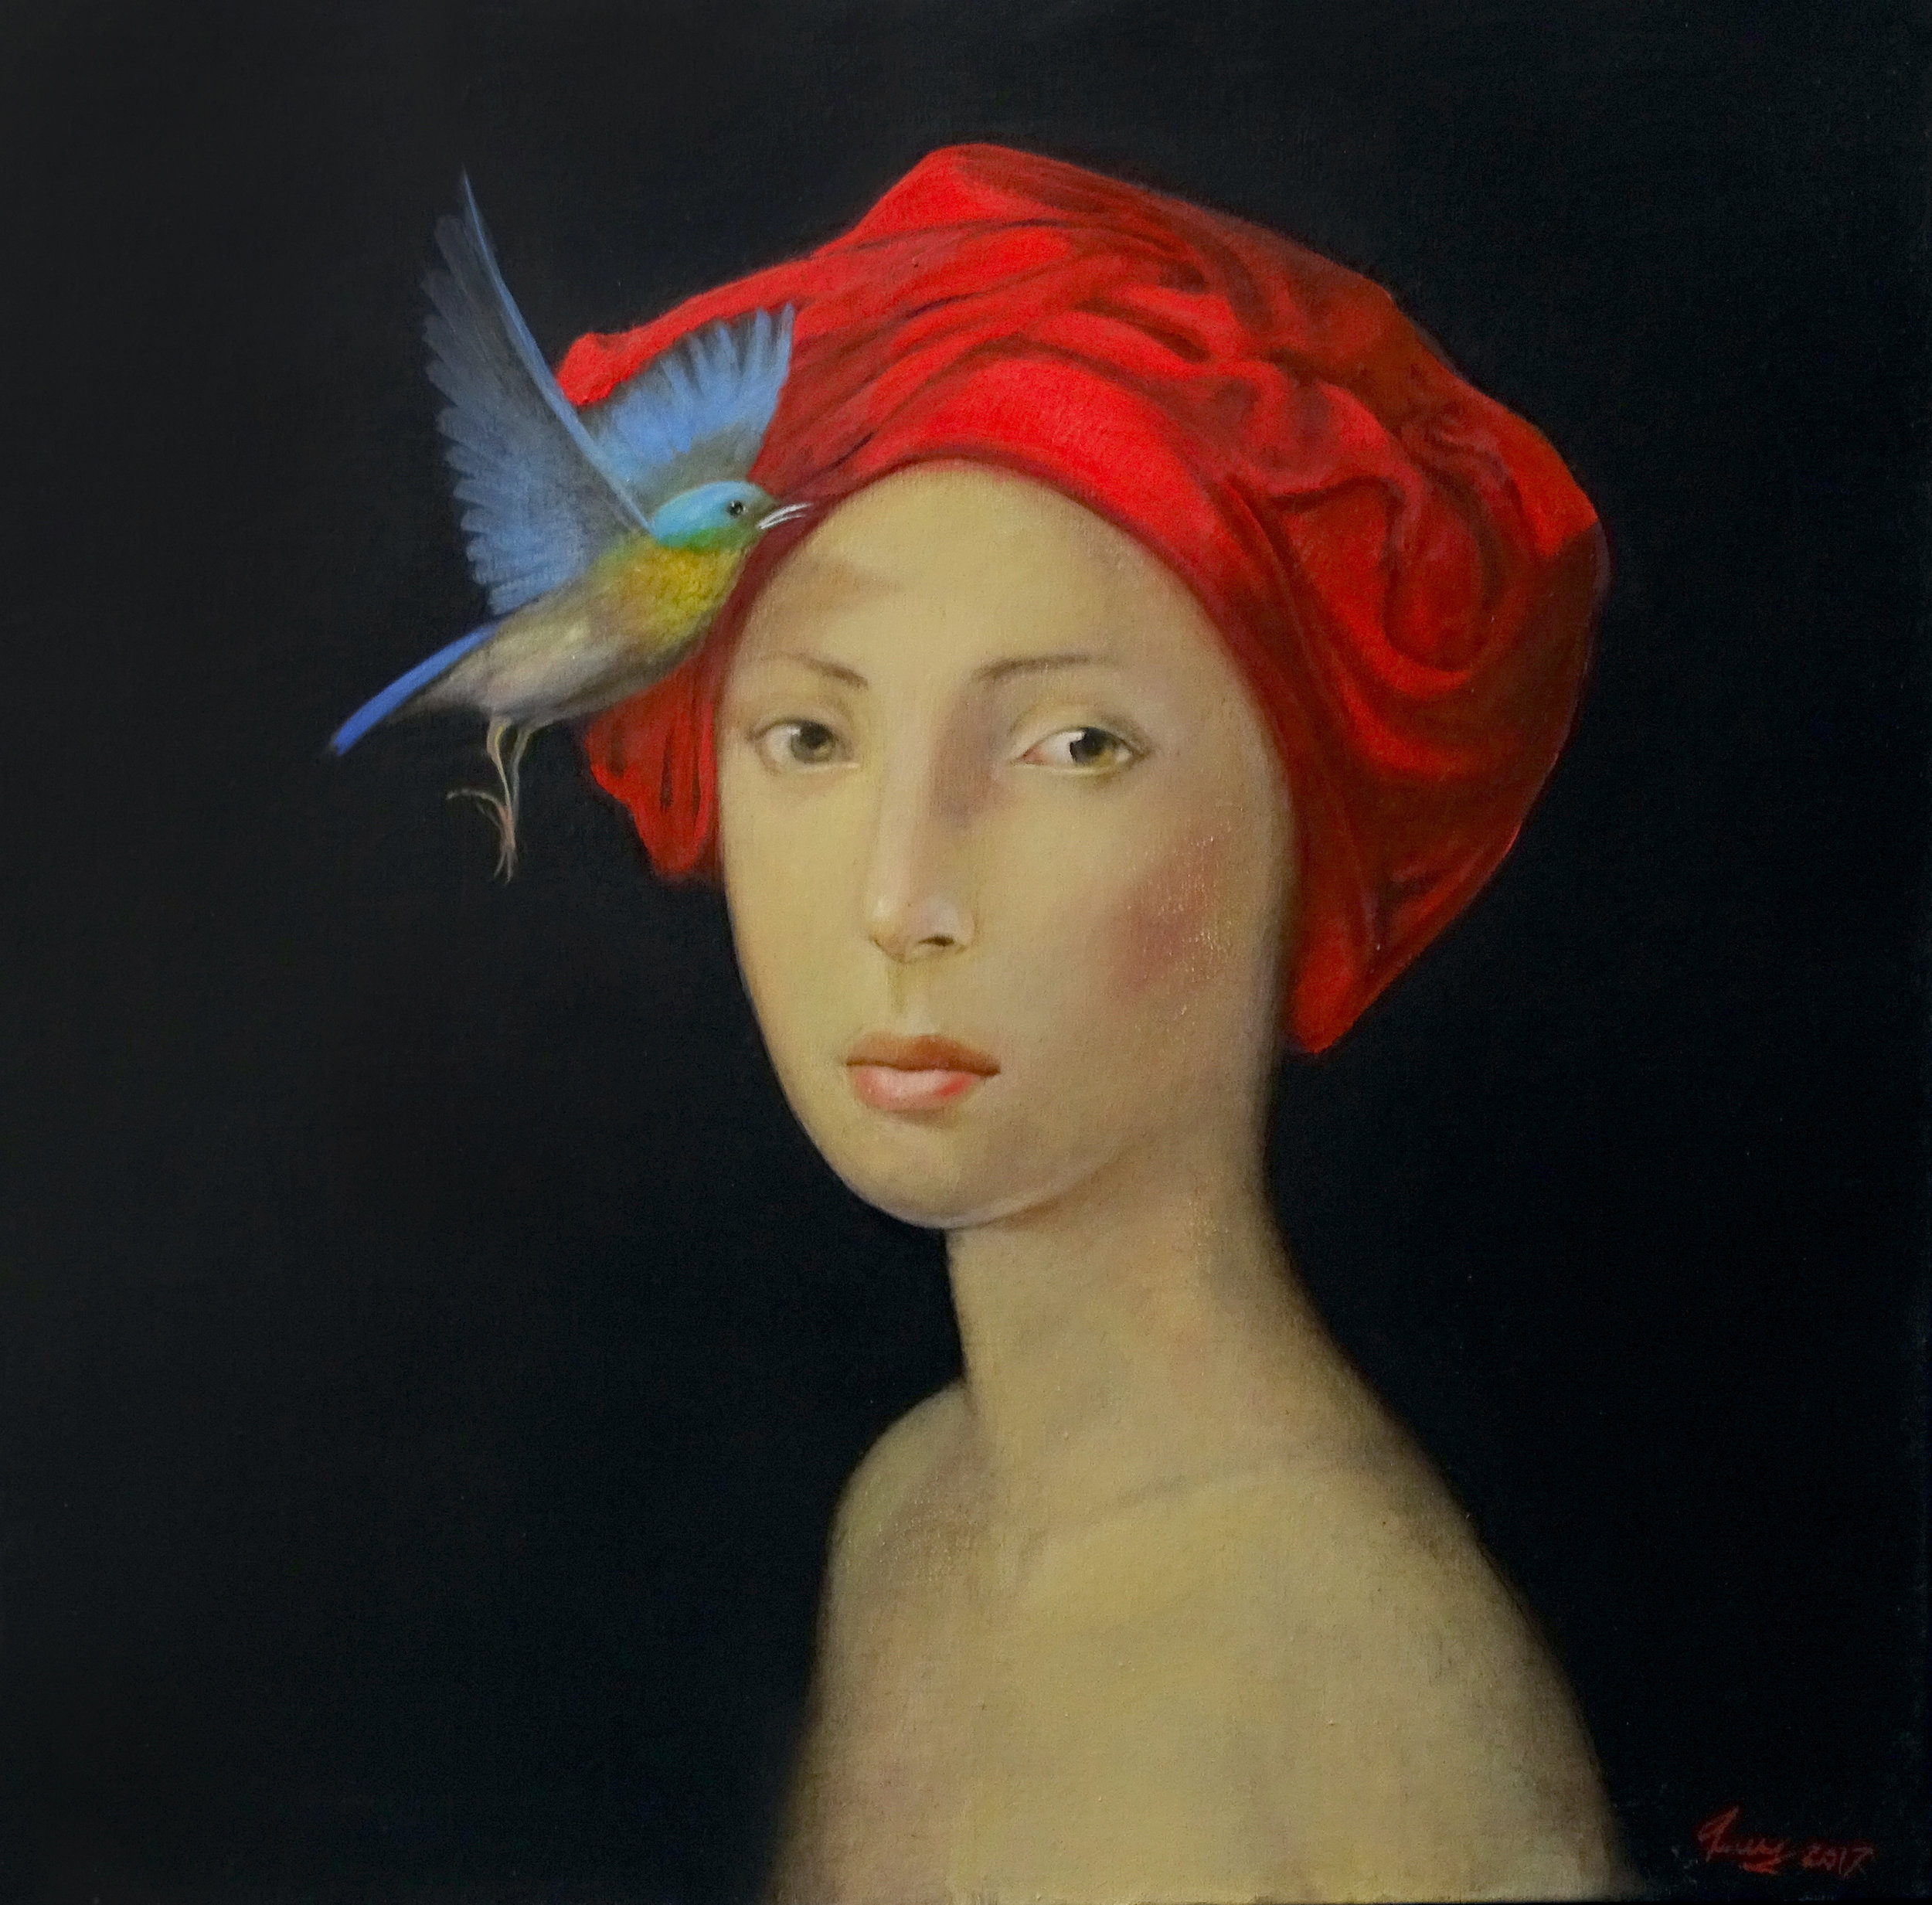 Lady With Kerchief | Oil on Canvas | 50x50cm | 2017